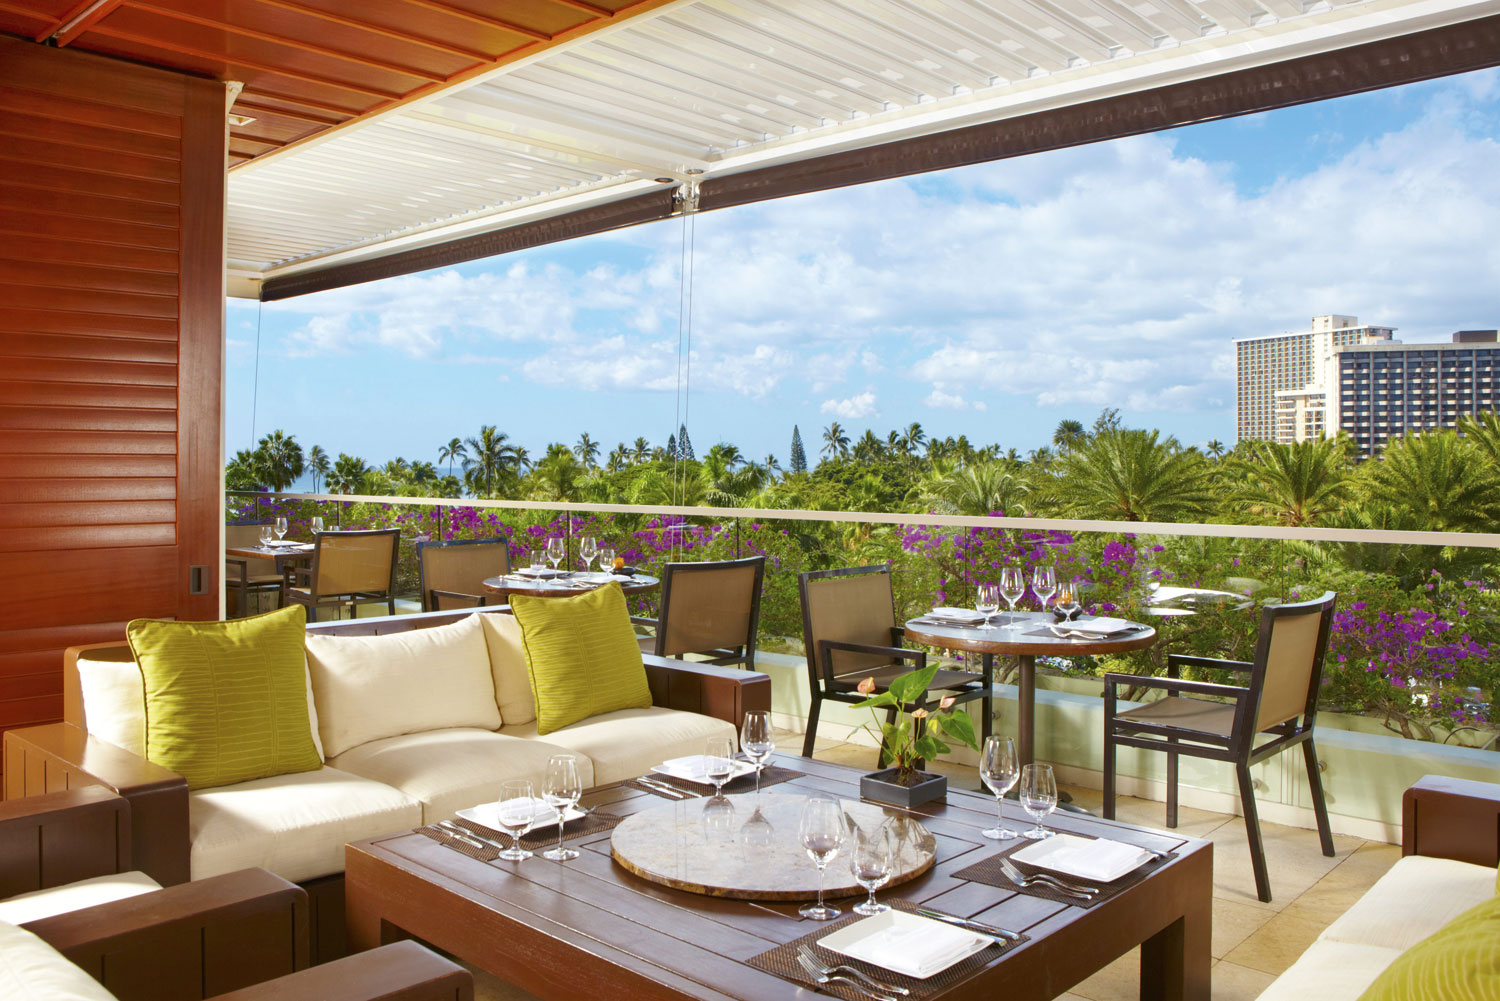 WAI'OLU ocean view lounge at Trump International Hotel Waikiki.